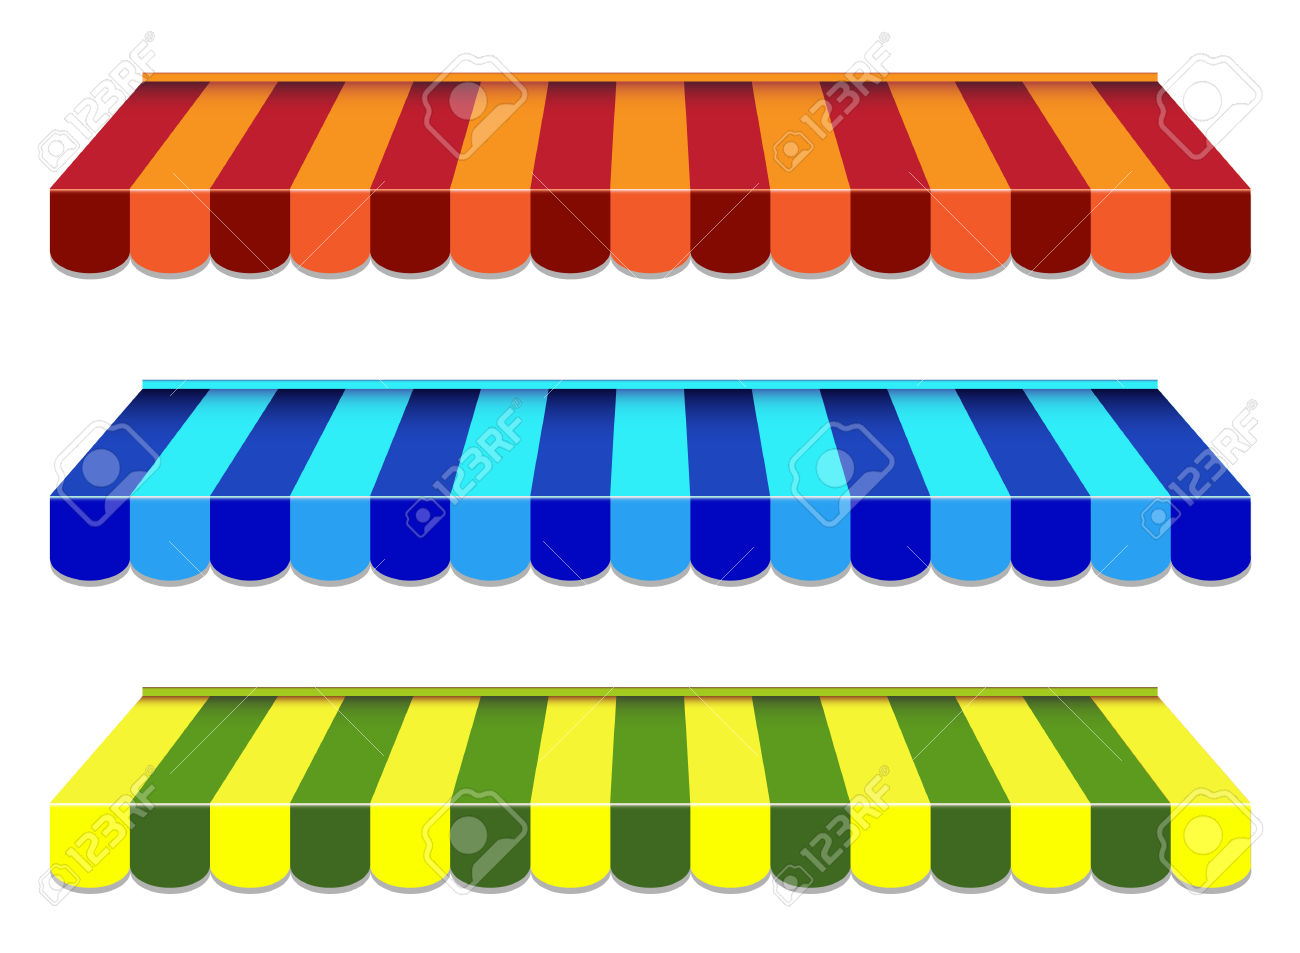 Striped awning clipart.